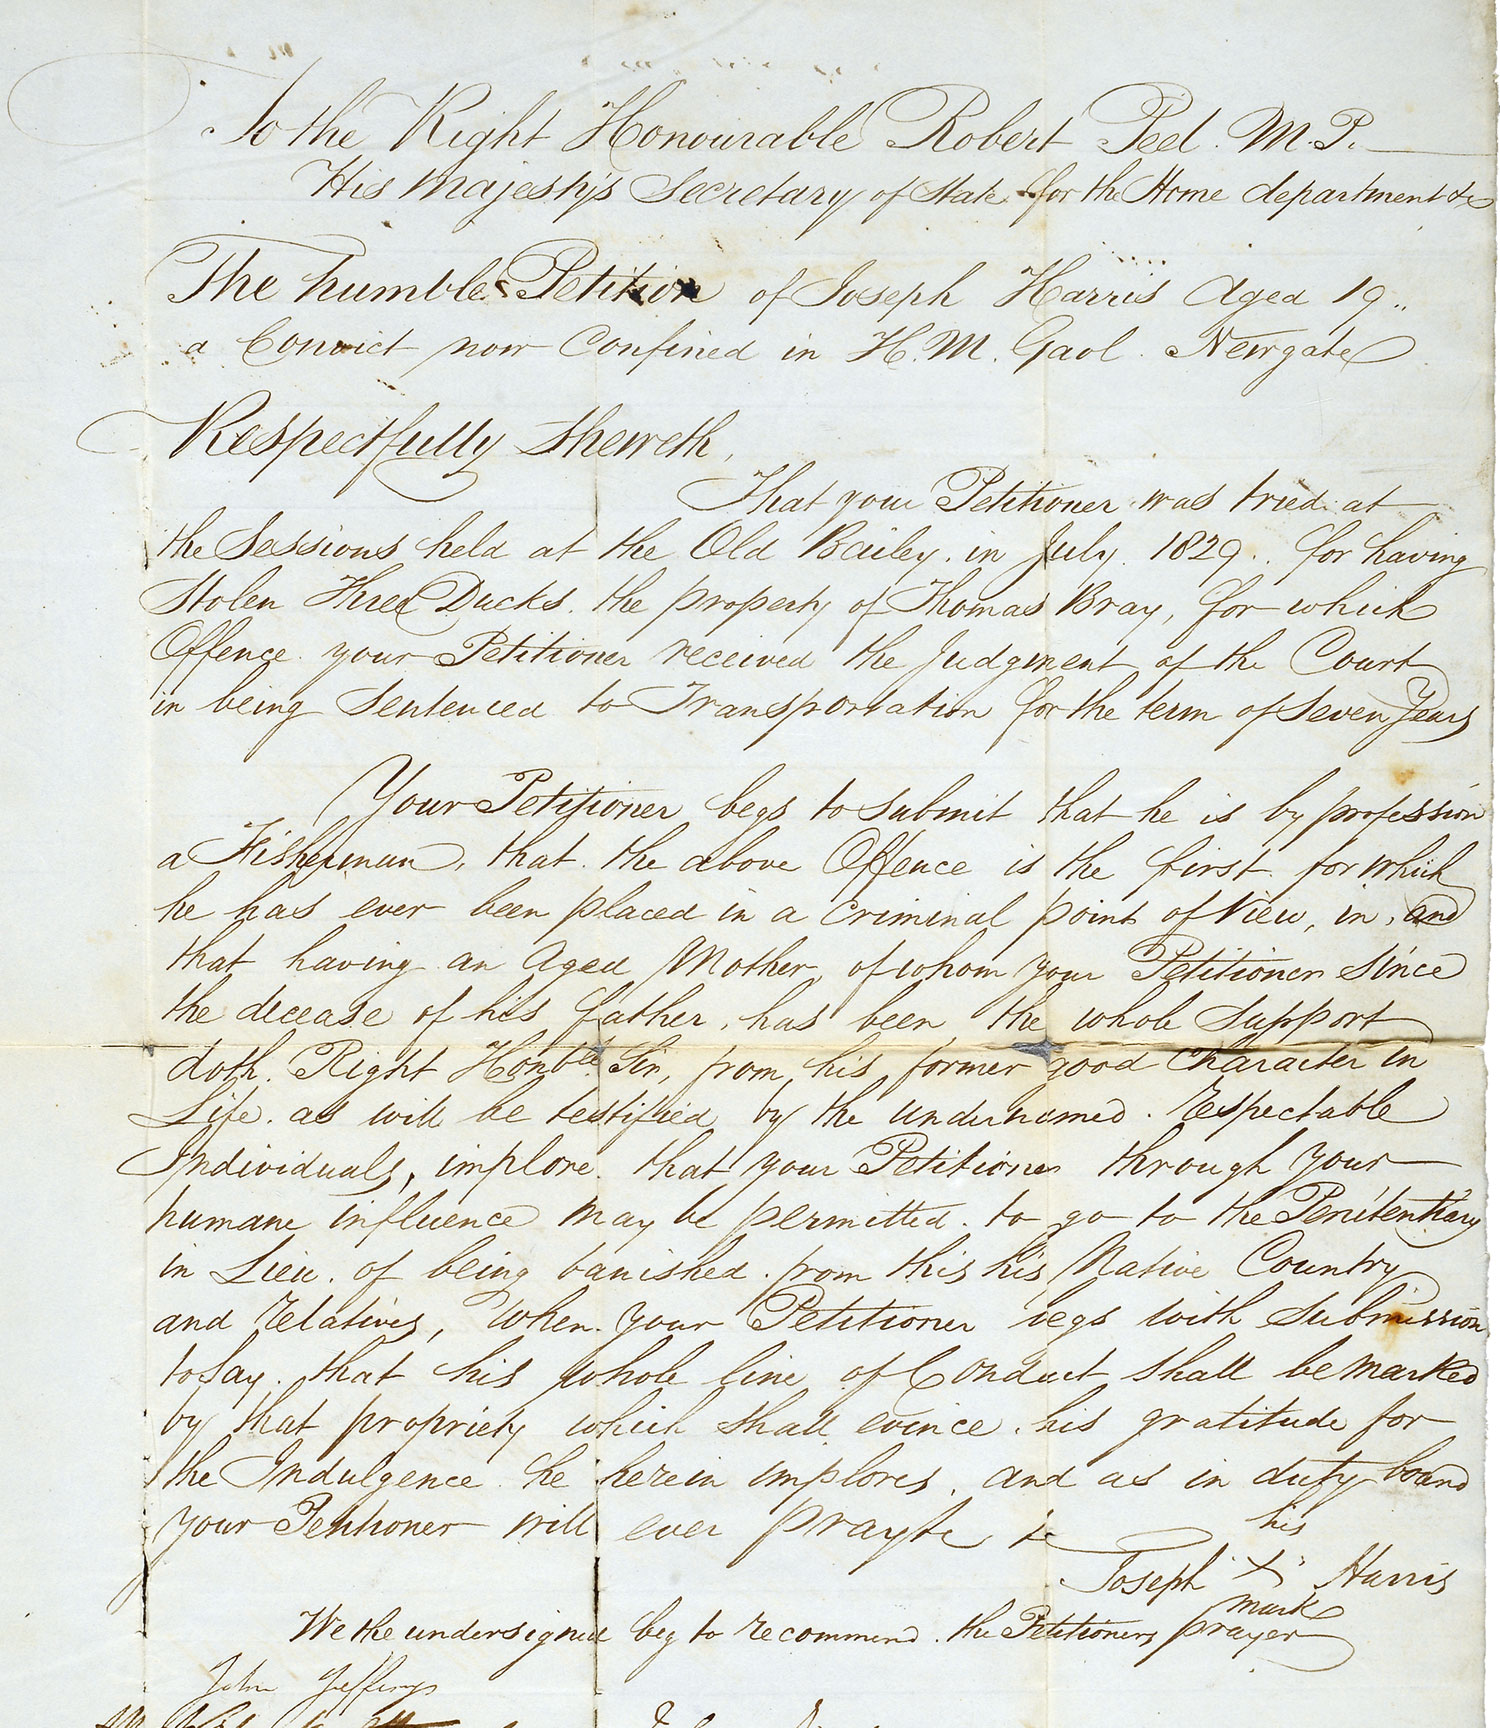 Petition from Joseph Harris to Robert Peel, Secretary of State (HO 17/40 pt.3 f.18)